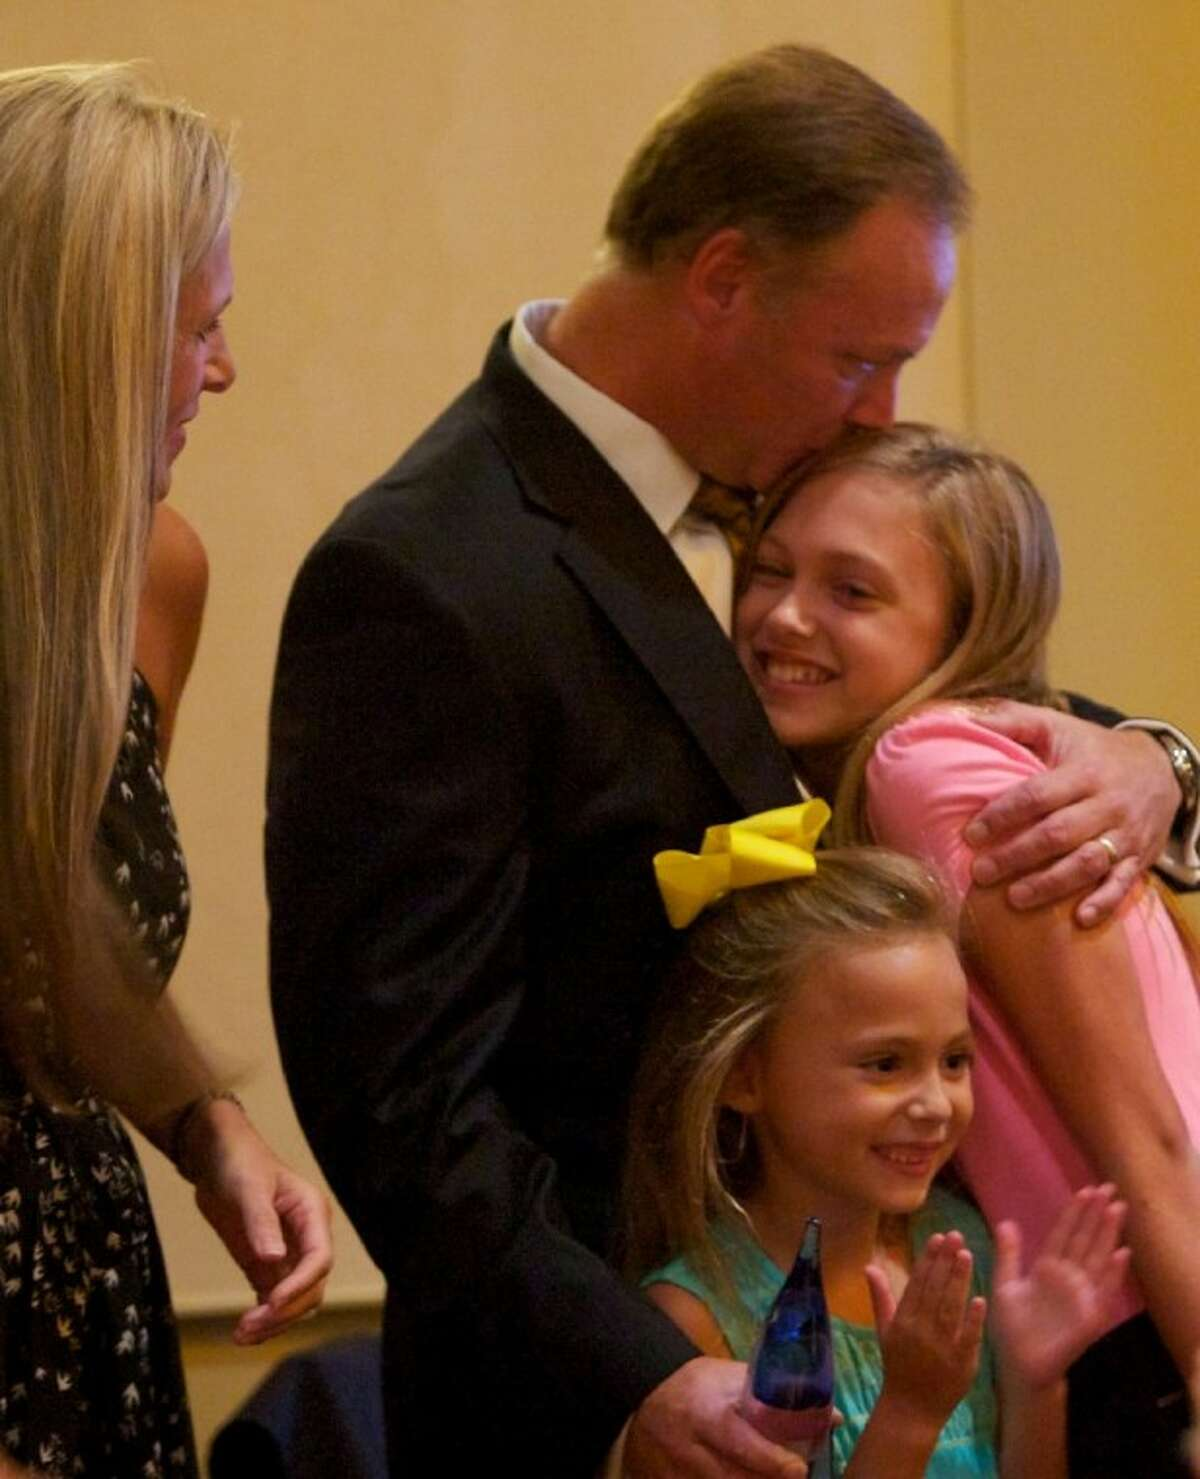 Danny Schroder receives a hug from his daughter Maddie after being named 2012 Volunteer of the Year at the South Montgomery County Chamber of Commerce Annual Awards Luncheon at The Woodlands Waterway Marriott last week.